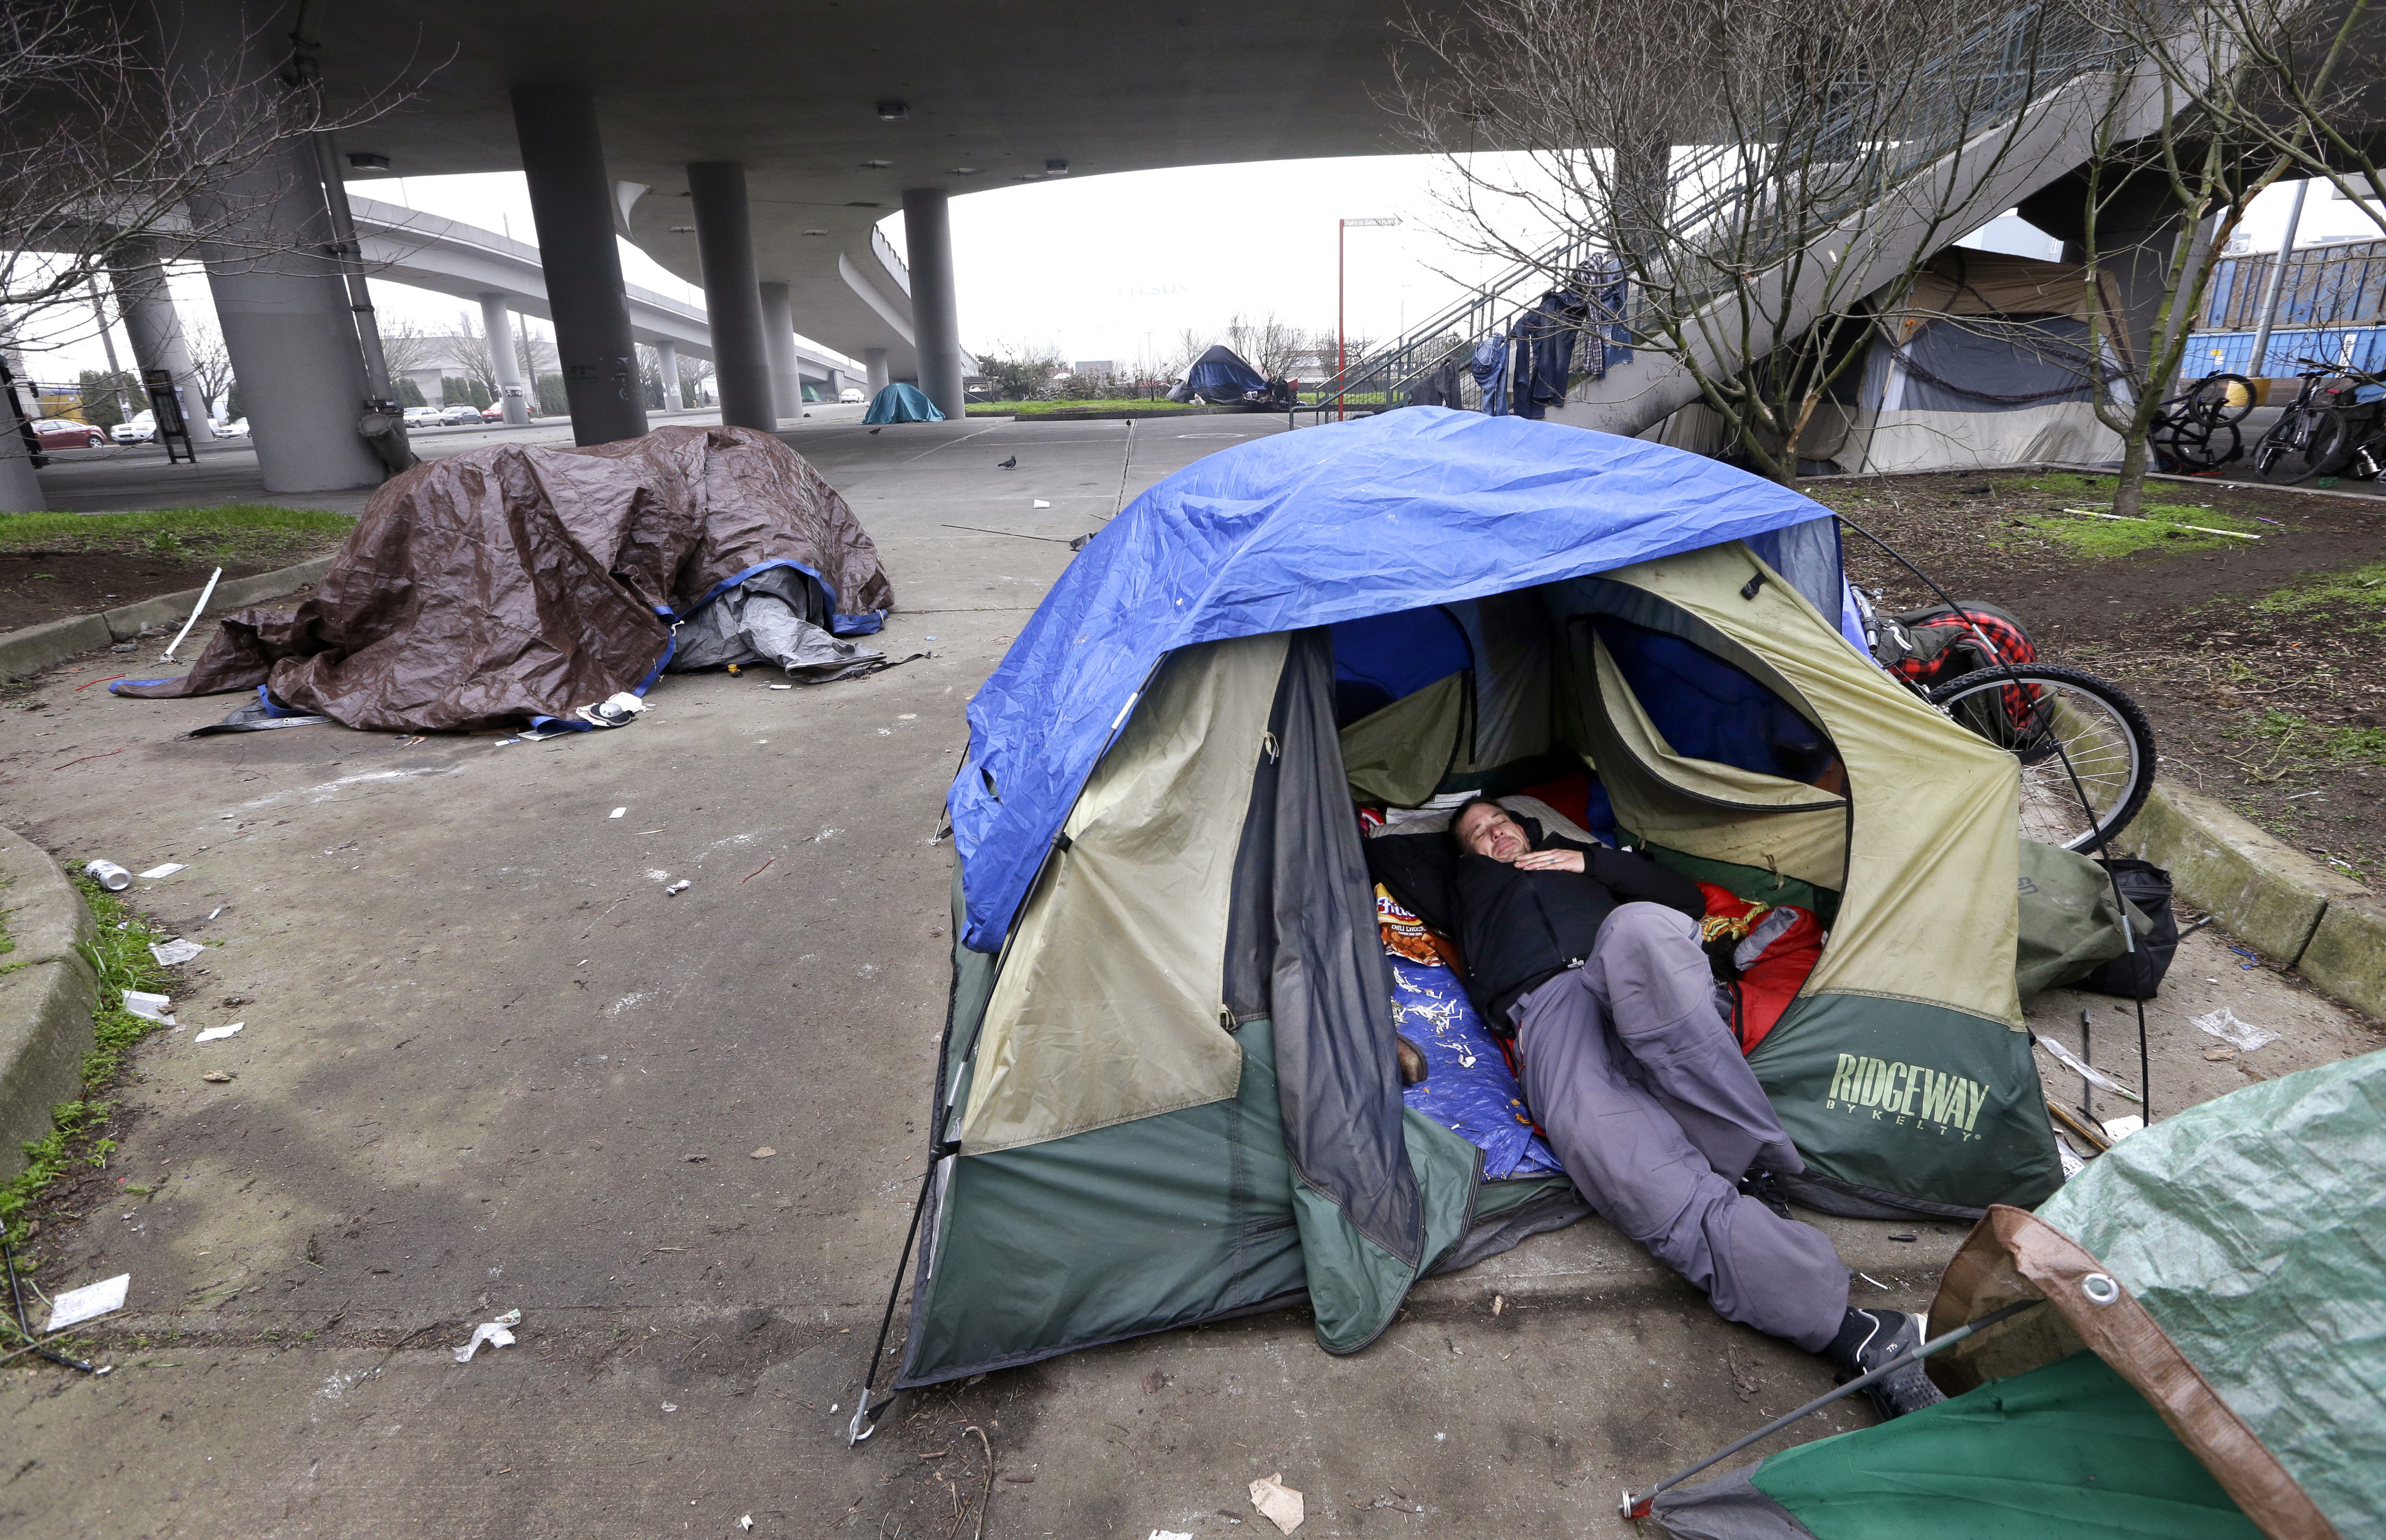 FILE - In this Feb. 9, 2016 file photo, a man lies in a tent with others camped nearby, under and near an overpass in Seattle. Microsoft pledged $500 million to address homelessness and develop affordable housing in response to the Seattle region's widening affordability gap. The company, which plans a news conference Thursday, Jan. 17, 2019, will split the funds three ways. (AP Photo/Elaine Thompson, File)